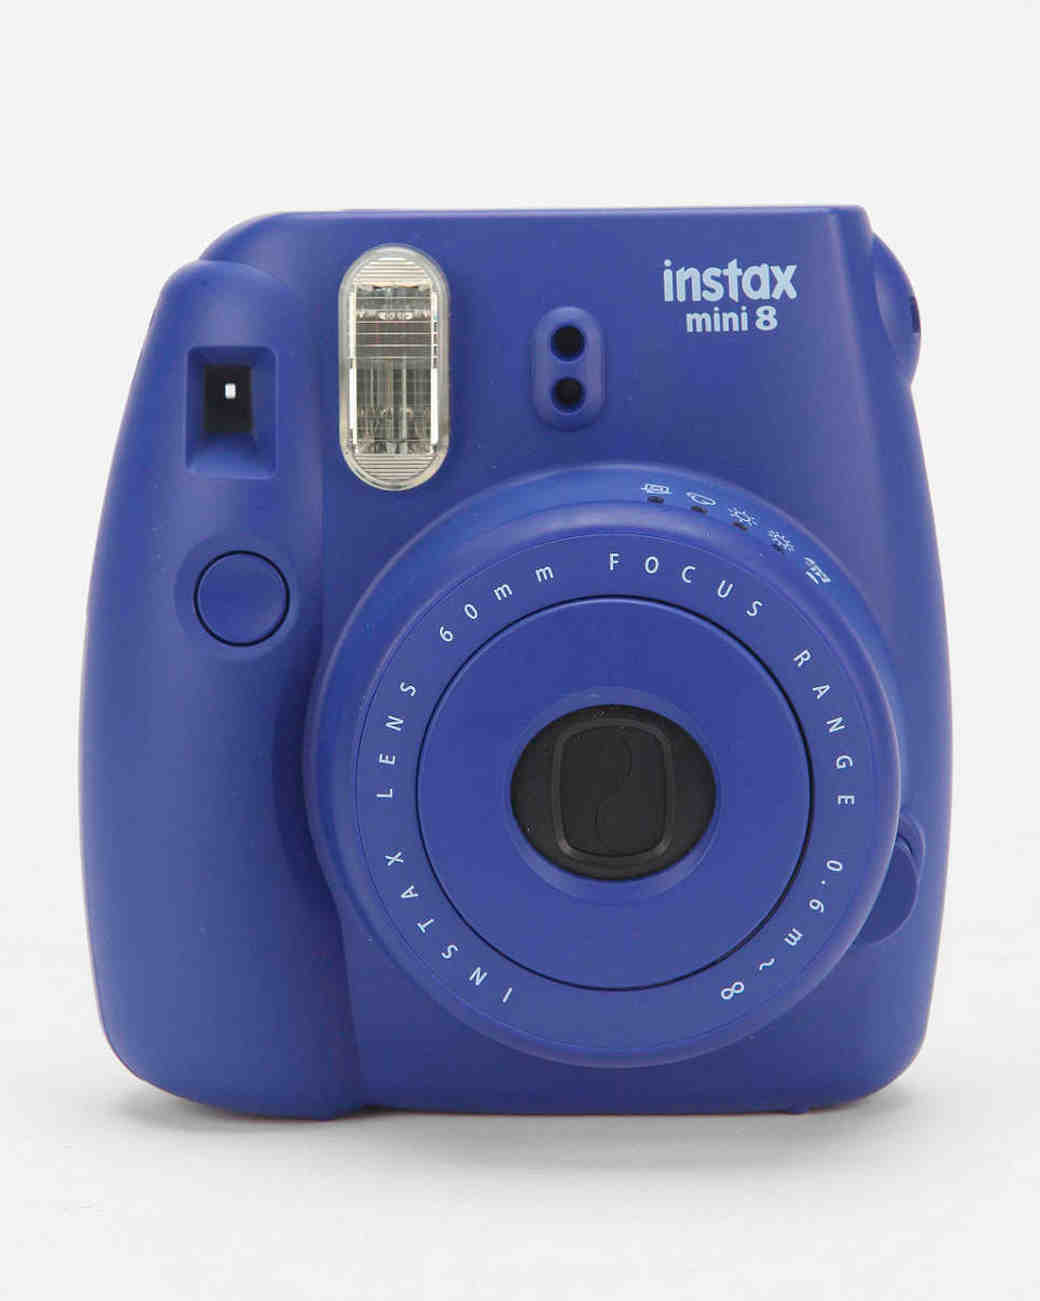 bridesmaid-gifts-fujifilm-instax-camera-urban-outfitters-0914.jpg